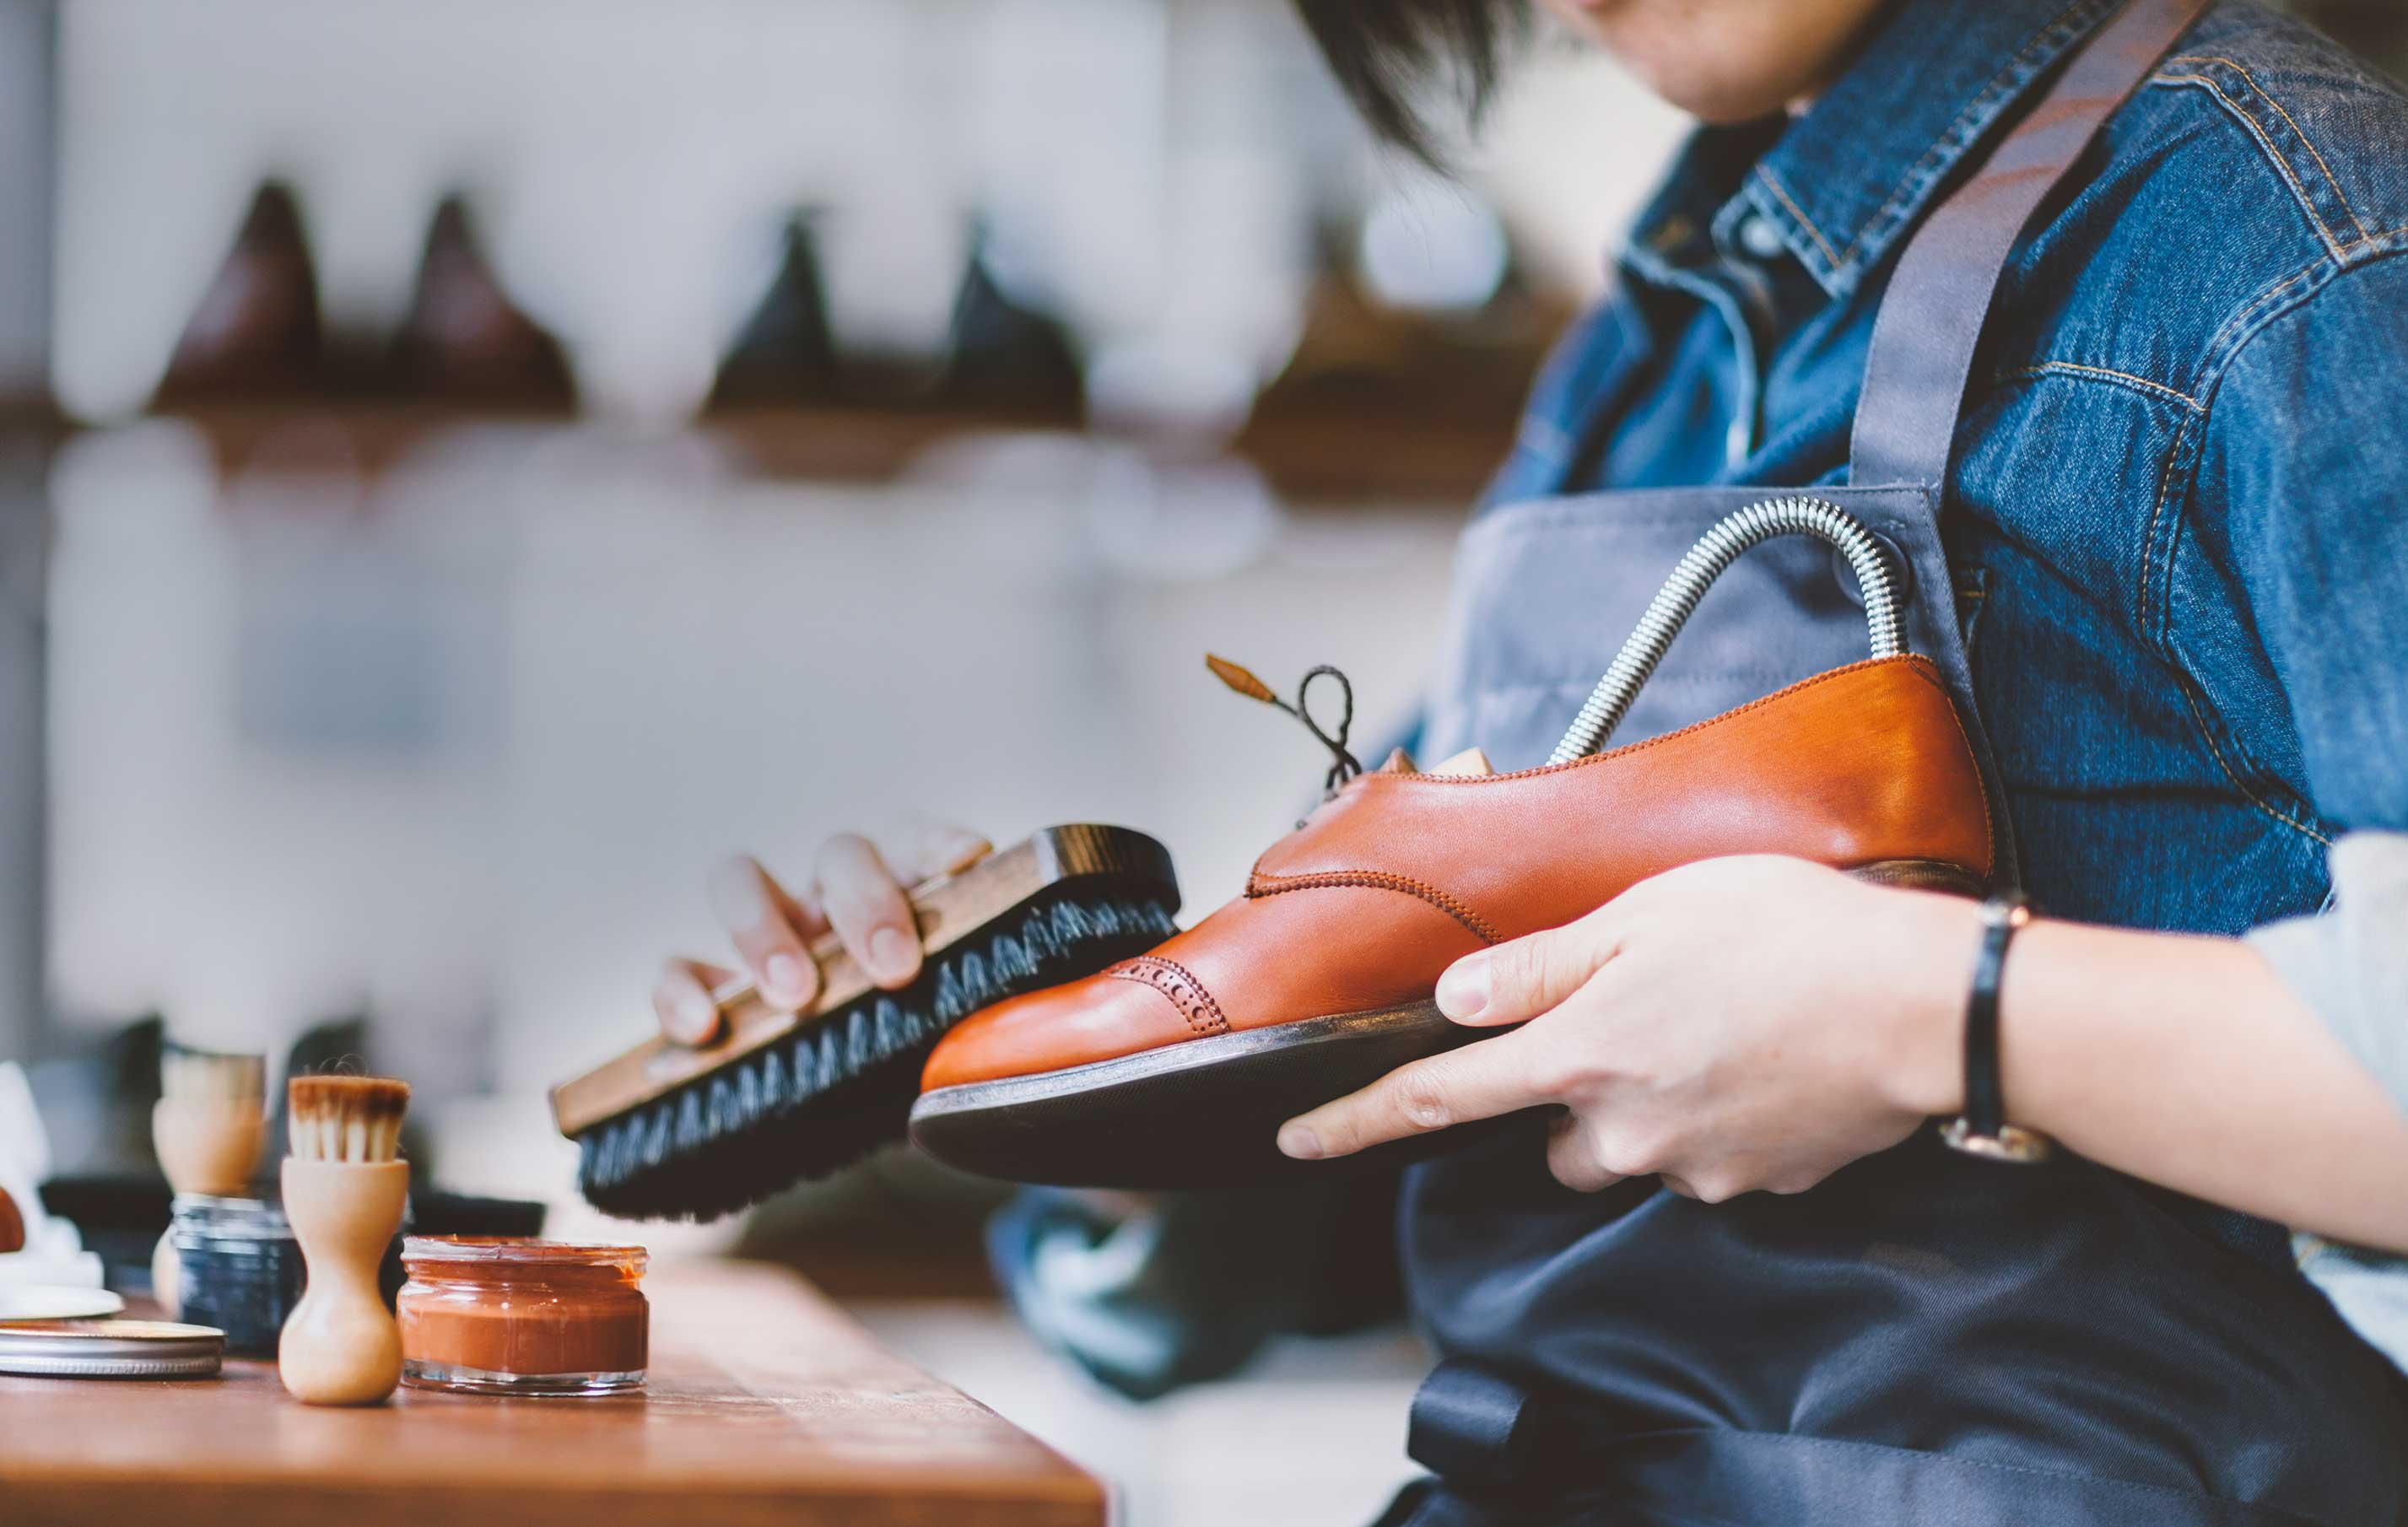 Leather shoe care solutions that protect and nourish